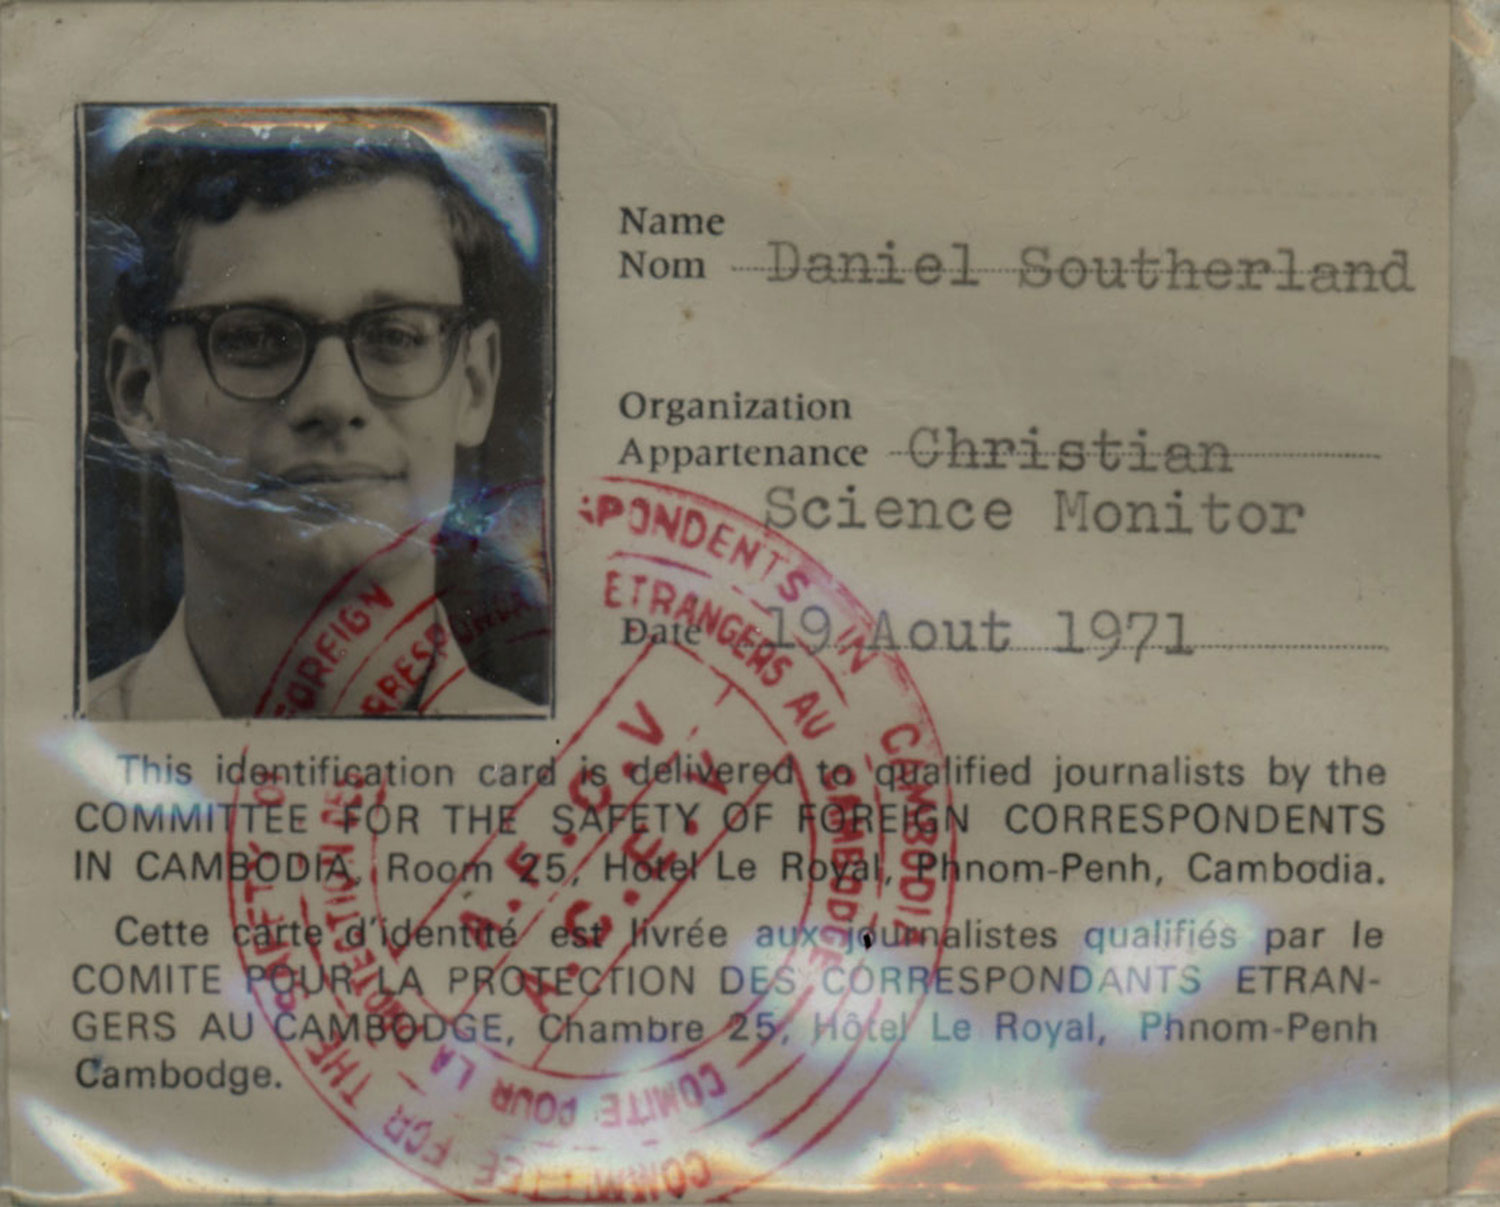 Southerland's Cambodian press accreditation in August 1971.